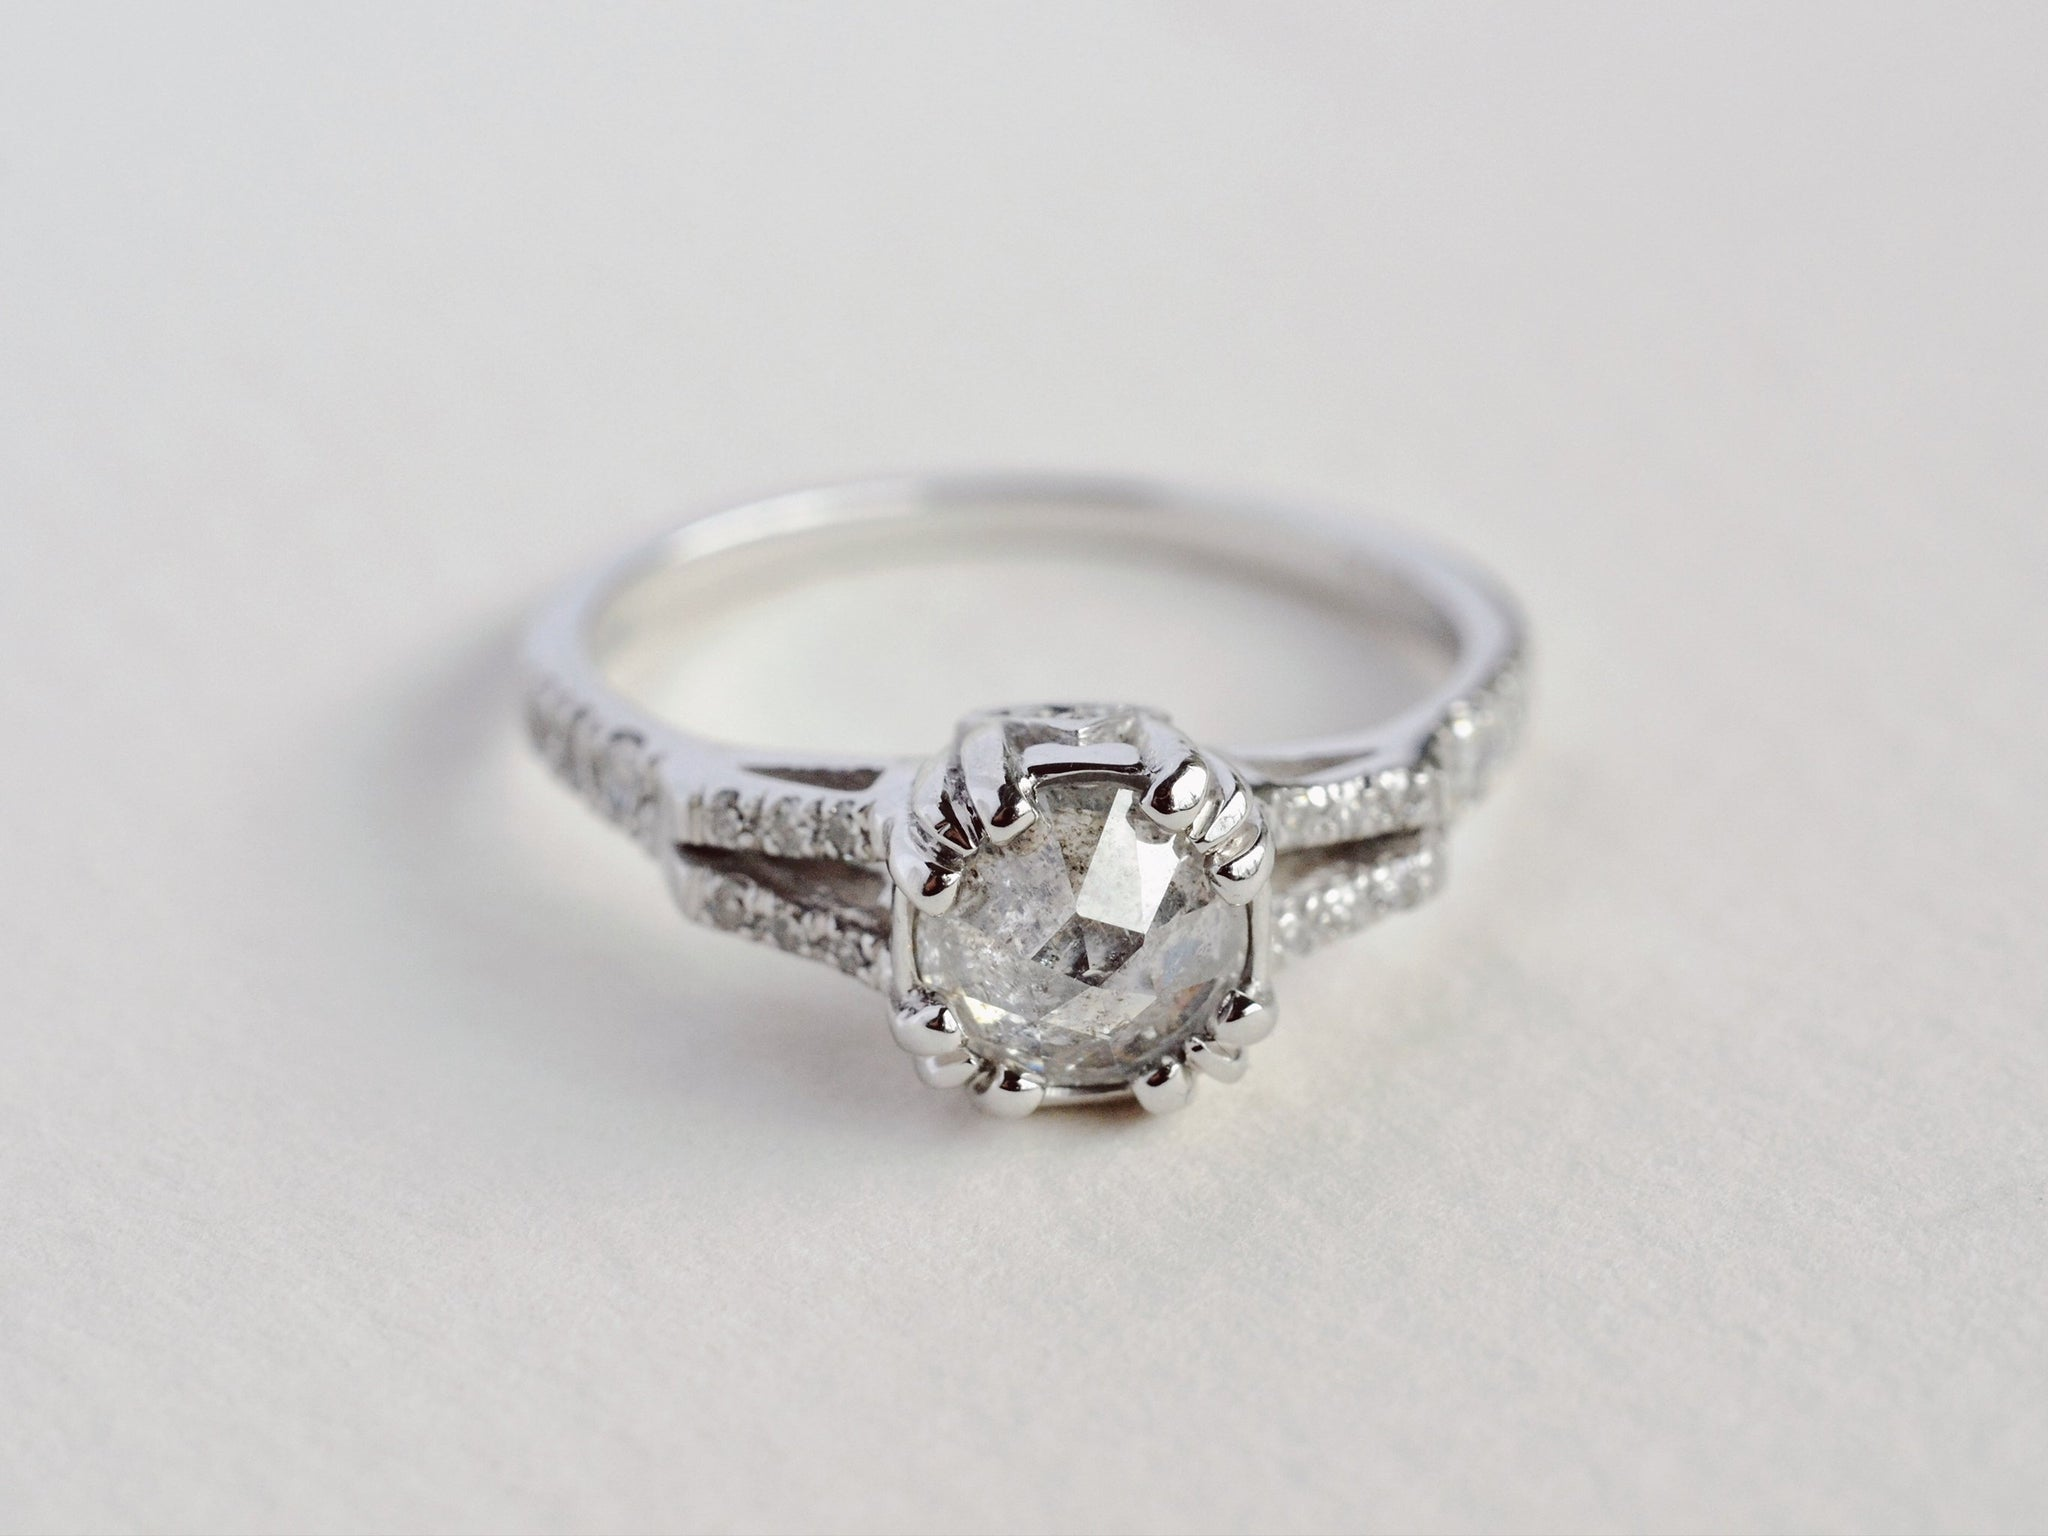 Beloved Solitaire Ring - In Stock Now